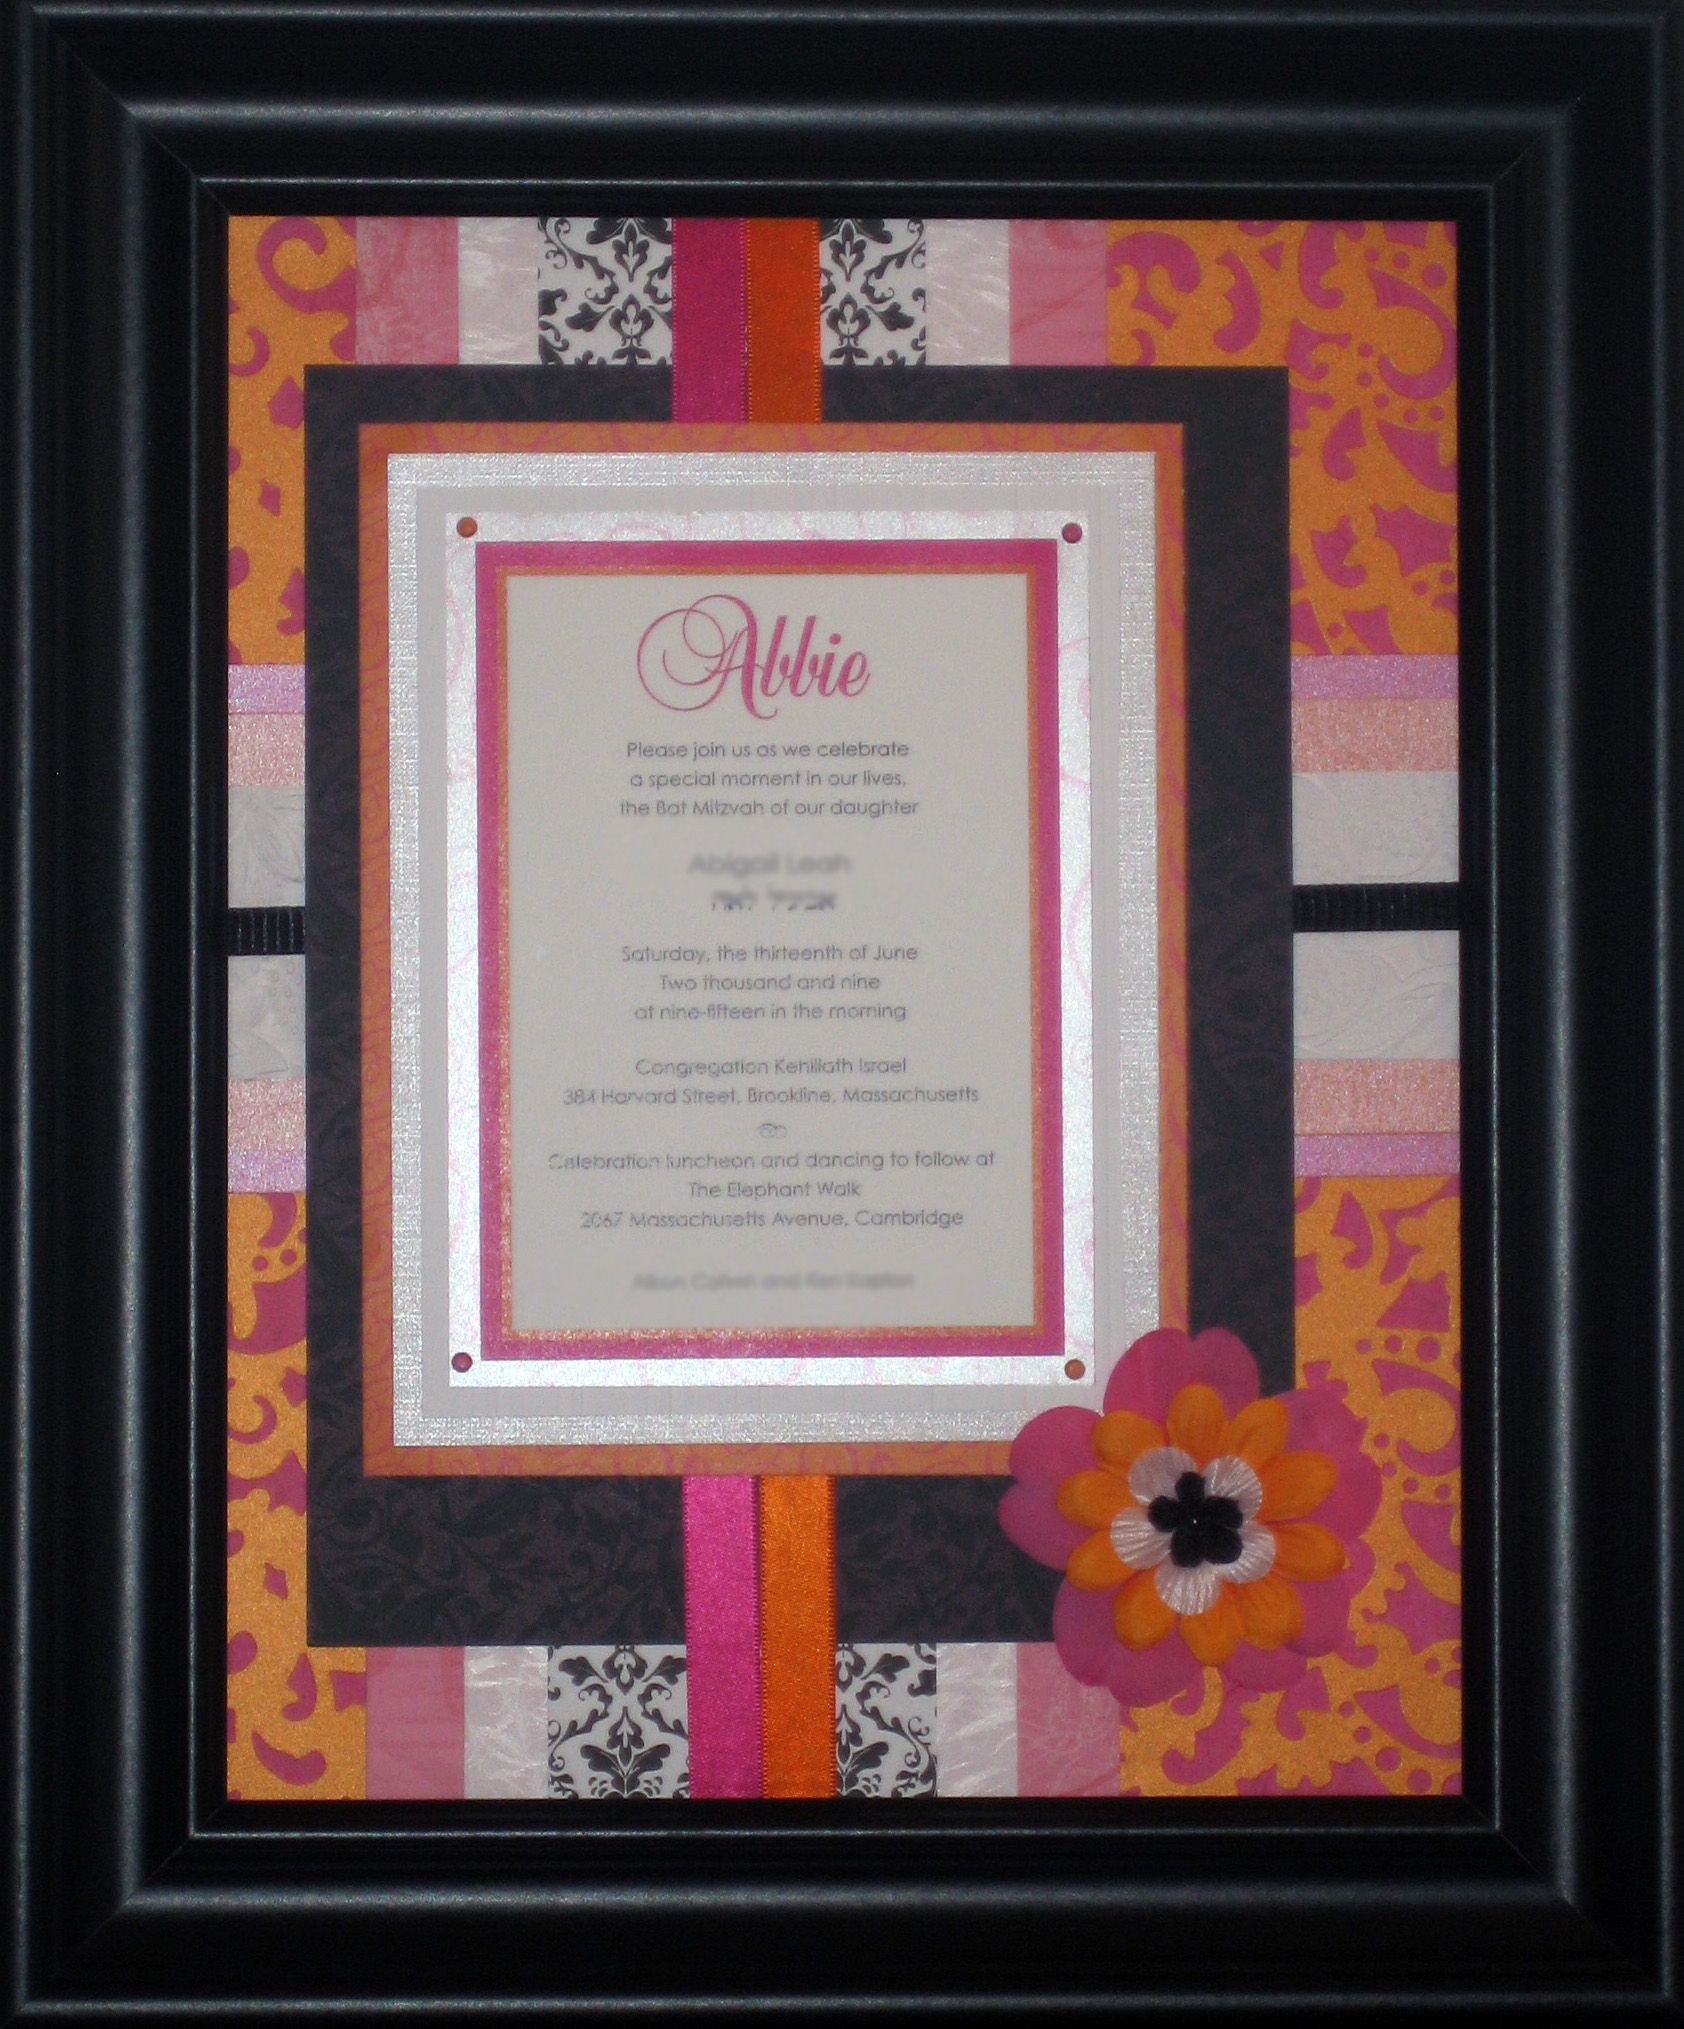 Pink and orange and black and white - modern and striking, yet this framed Bat Mitzvah invitation keepsake has a timeless look. $149